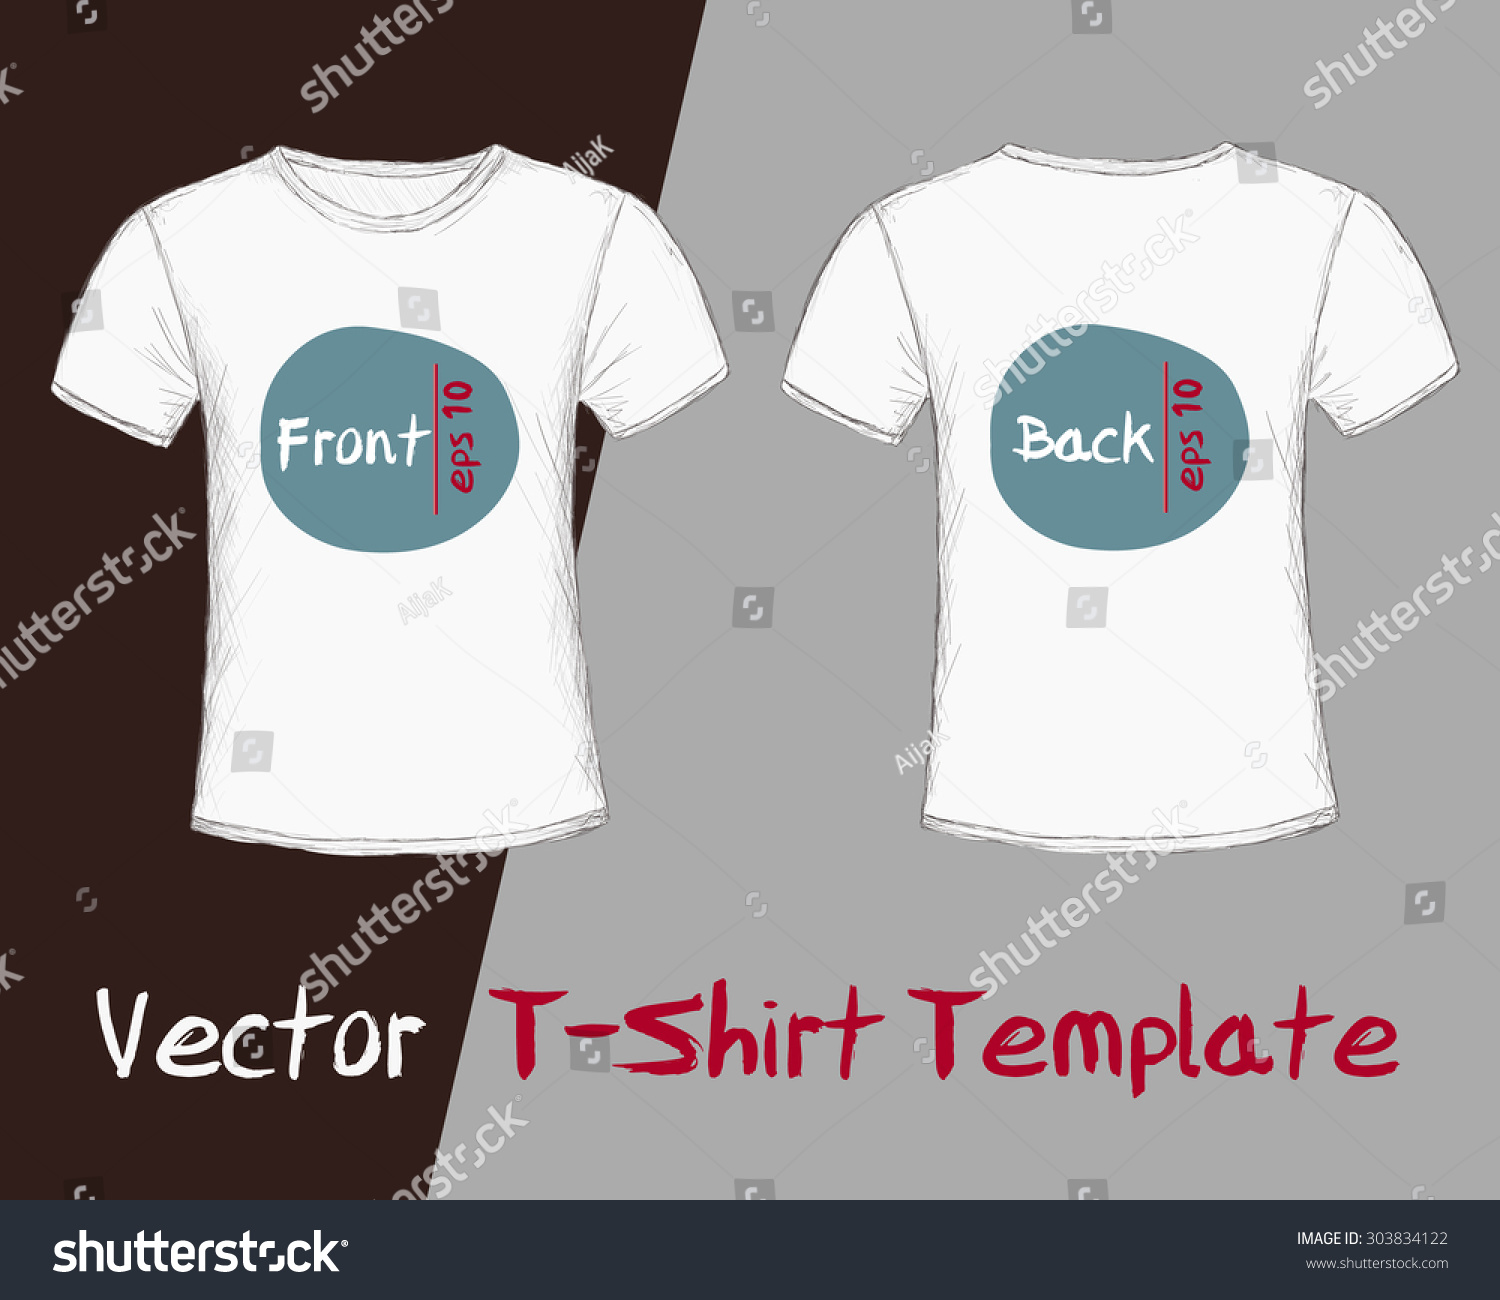 Design t shirt sample - Vector Of T Shirt Template Male Front And Back View Hand Drawn